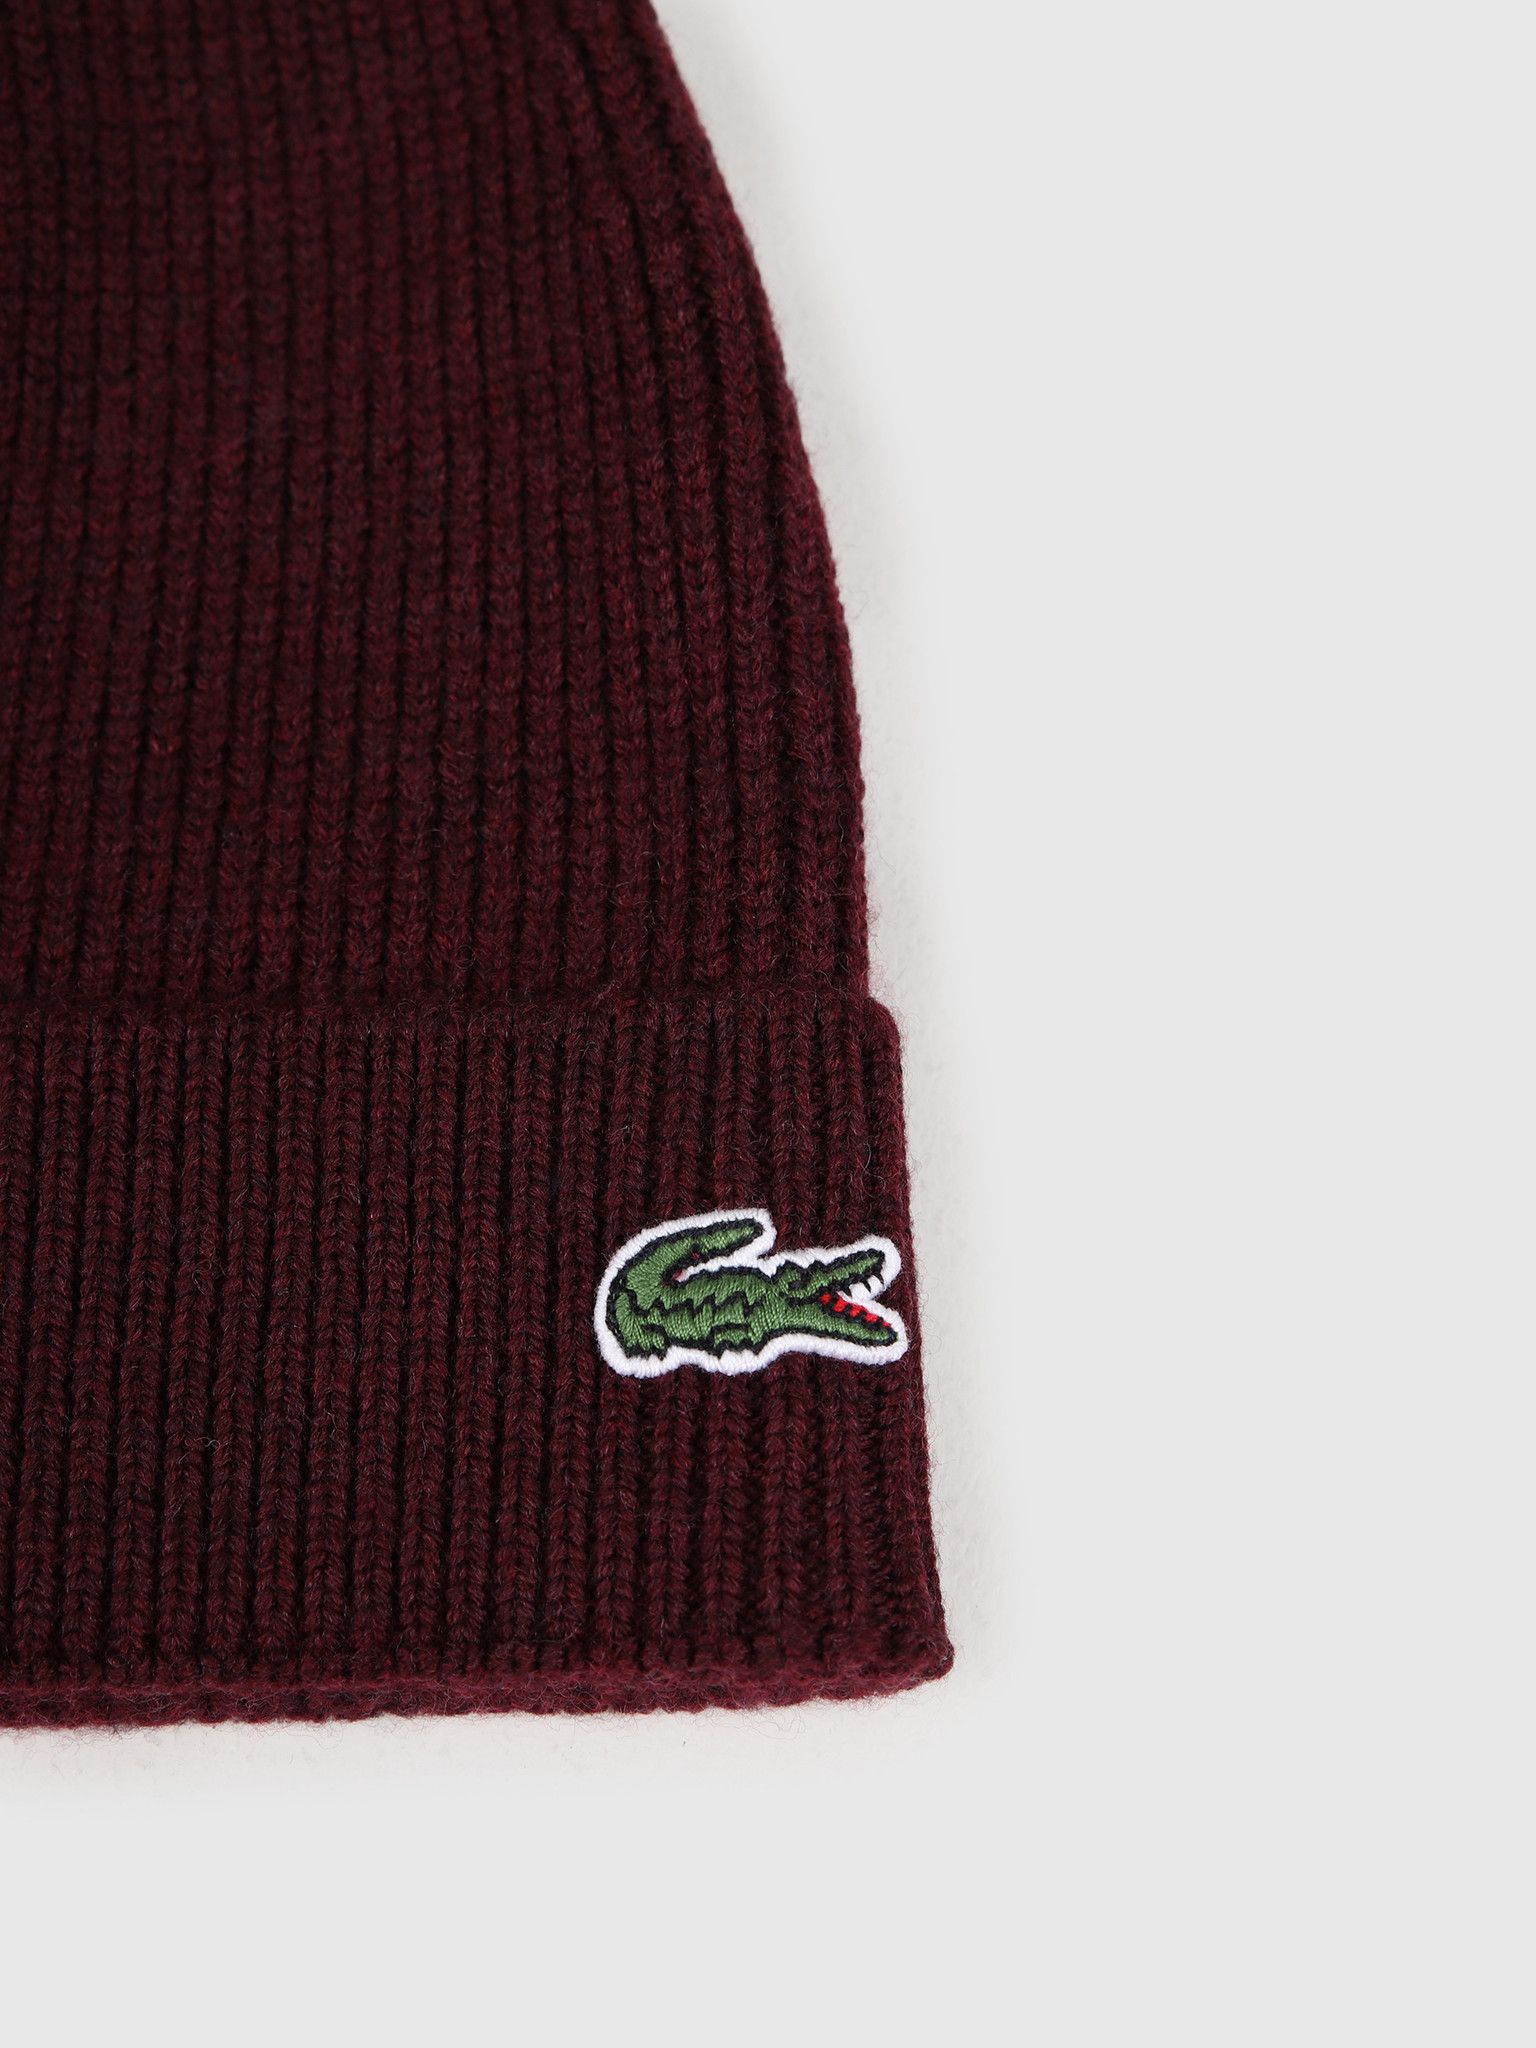 Lacoste Lacoste 2G4B Knitted Cap Vine Chine RB3502-93